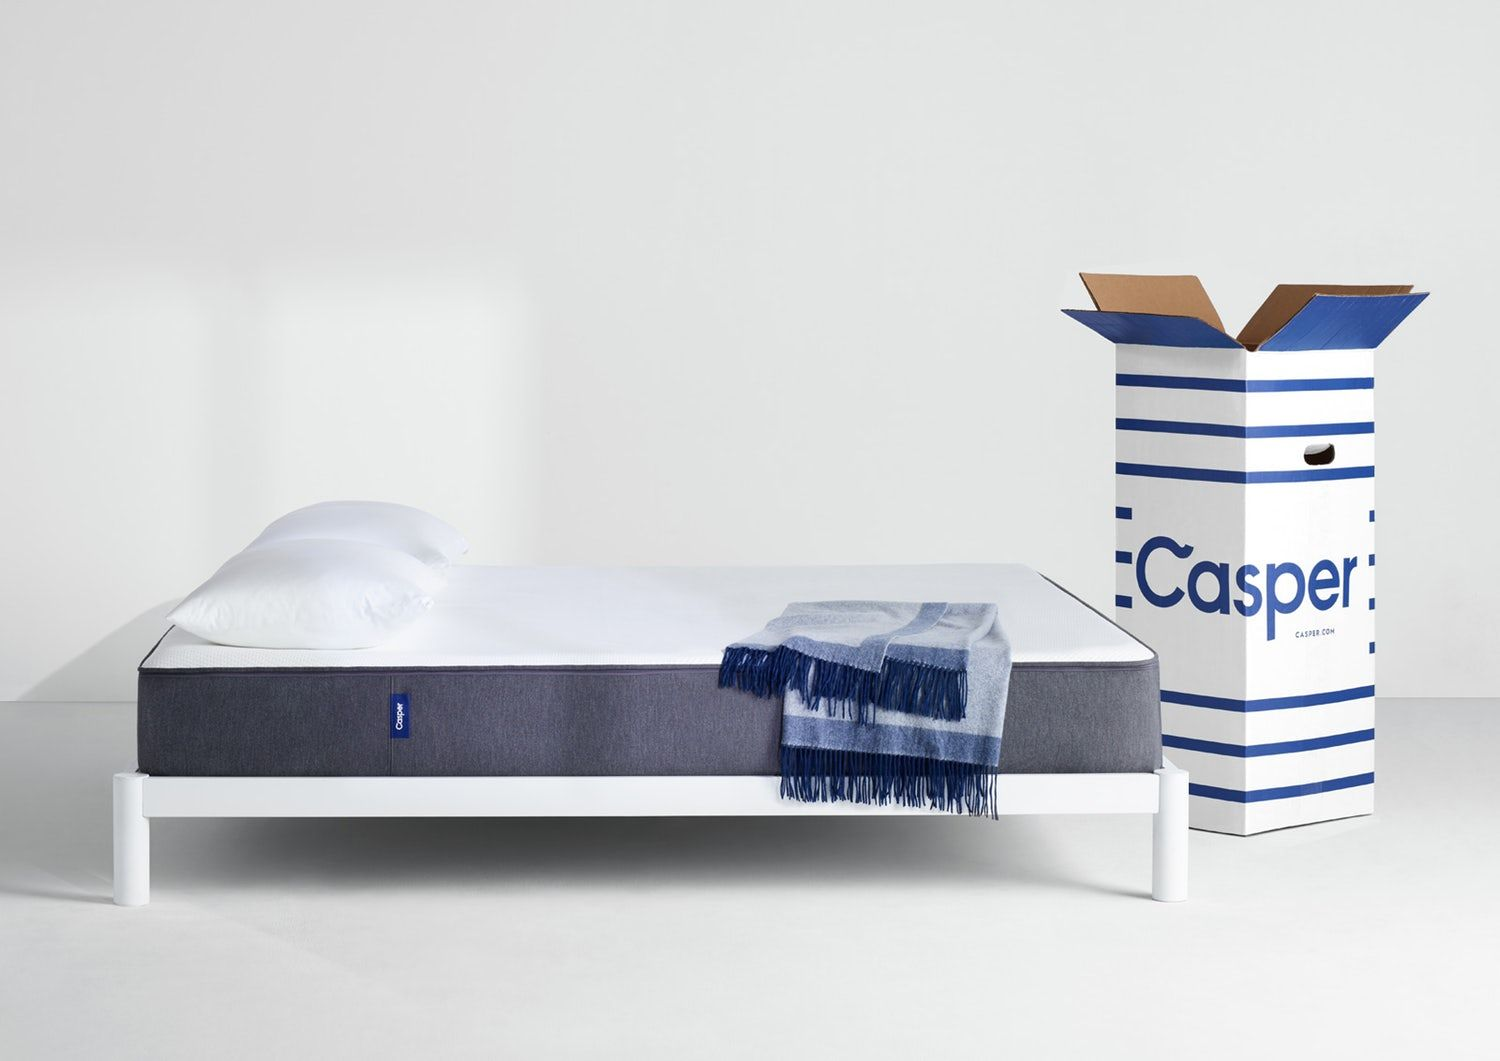 Casper Mattress With Images Casper Mattress Best Mattress